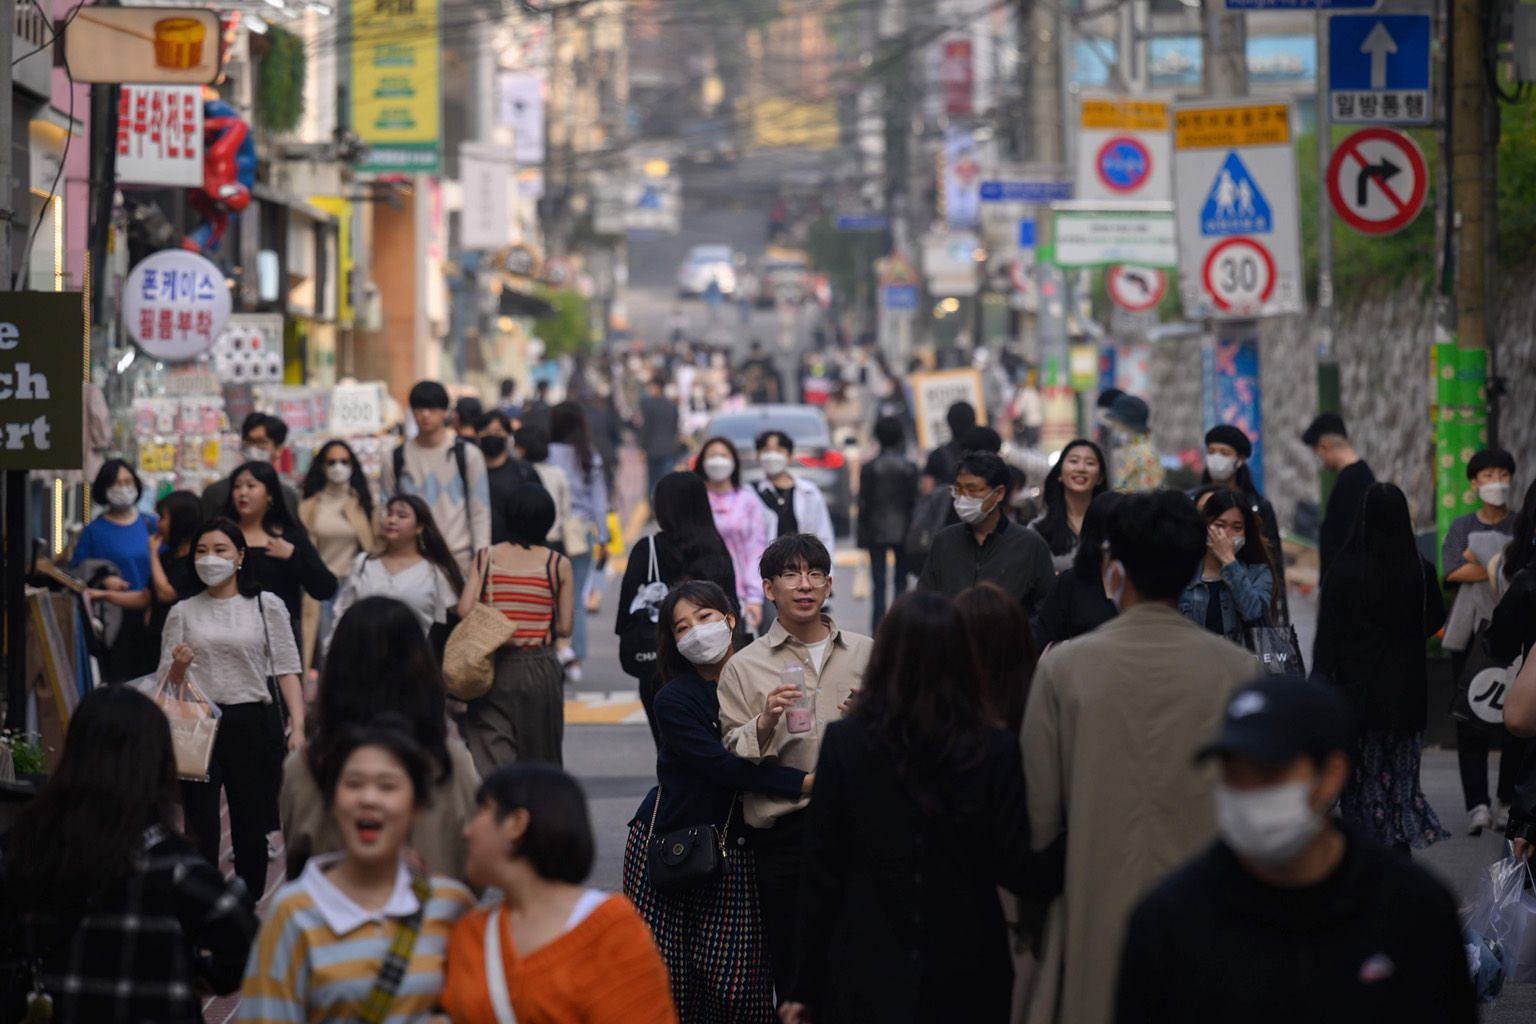 South Koreans out on the street in the Hongdae district of Seoul last week. So far, China and South Korea are the only large nations to have eased restrictions enough to move the dial on economic activity. In the United States, 29 of the 50 states ha